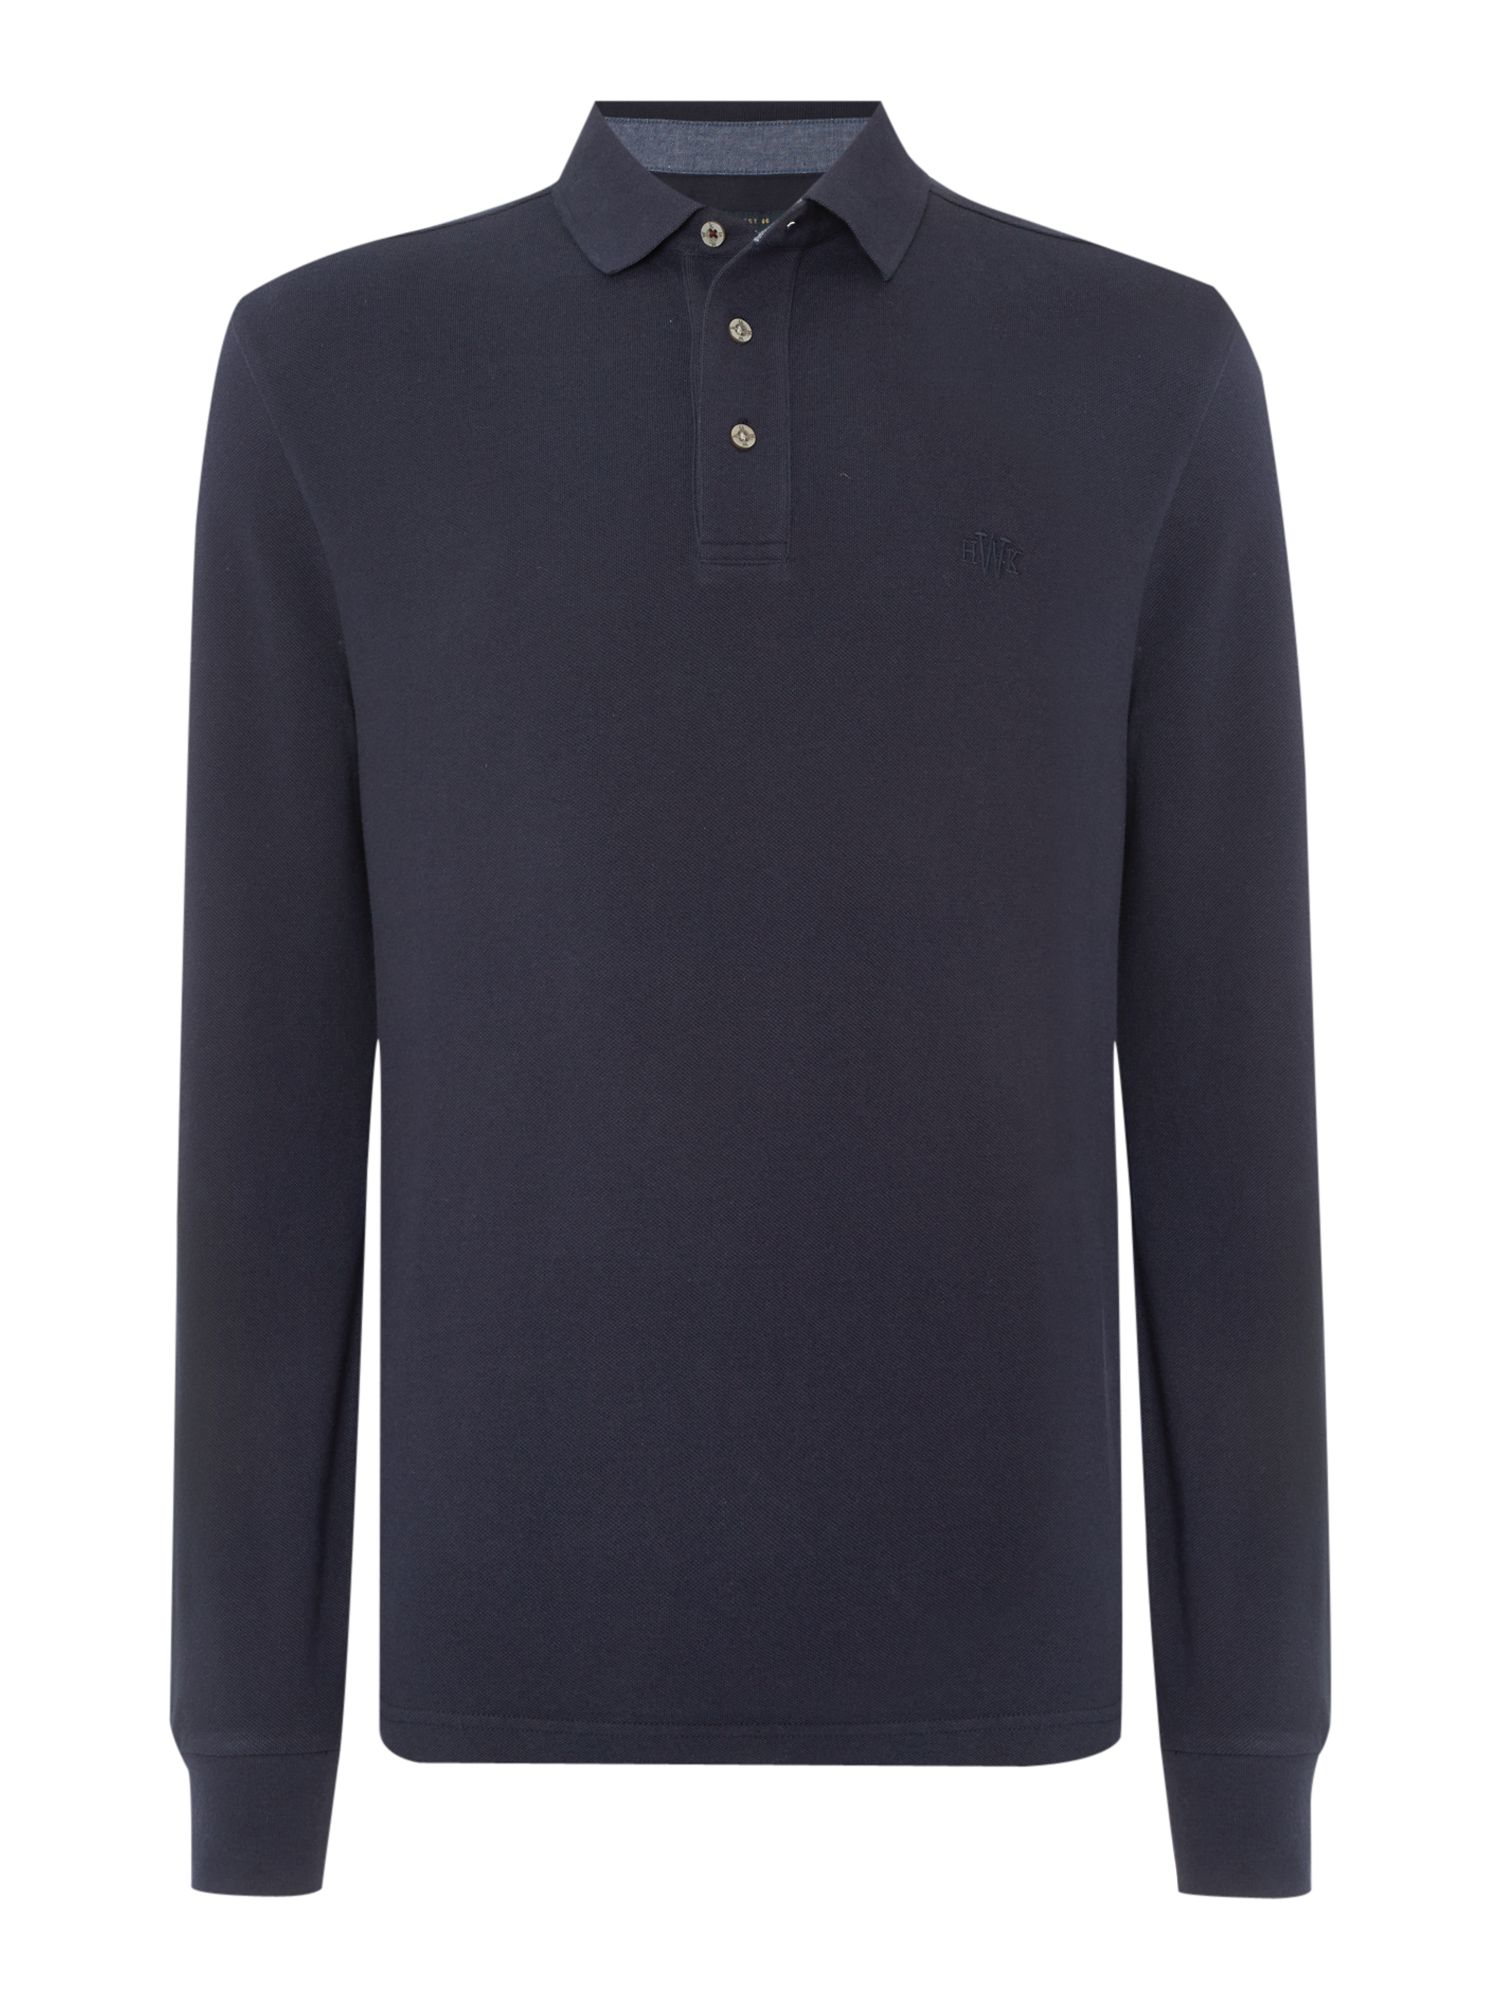 Howick paxton plain pique long sleeve polo shirt in blue for Plain navy polo shirts